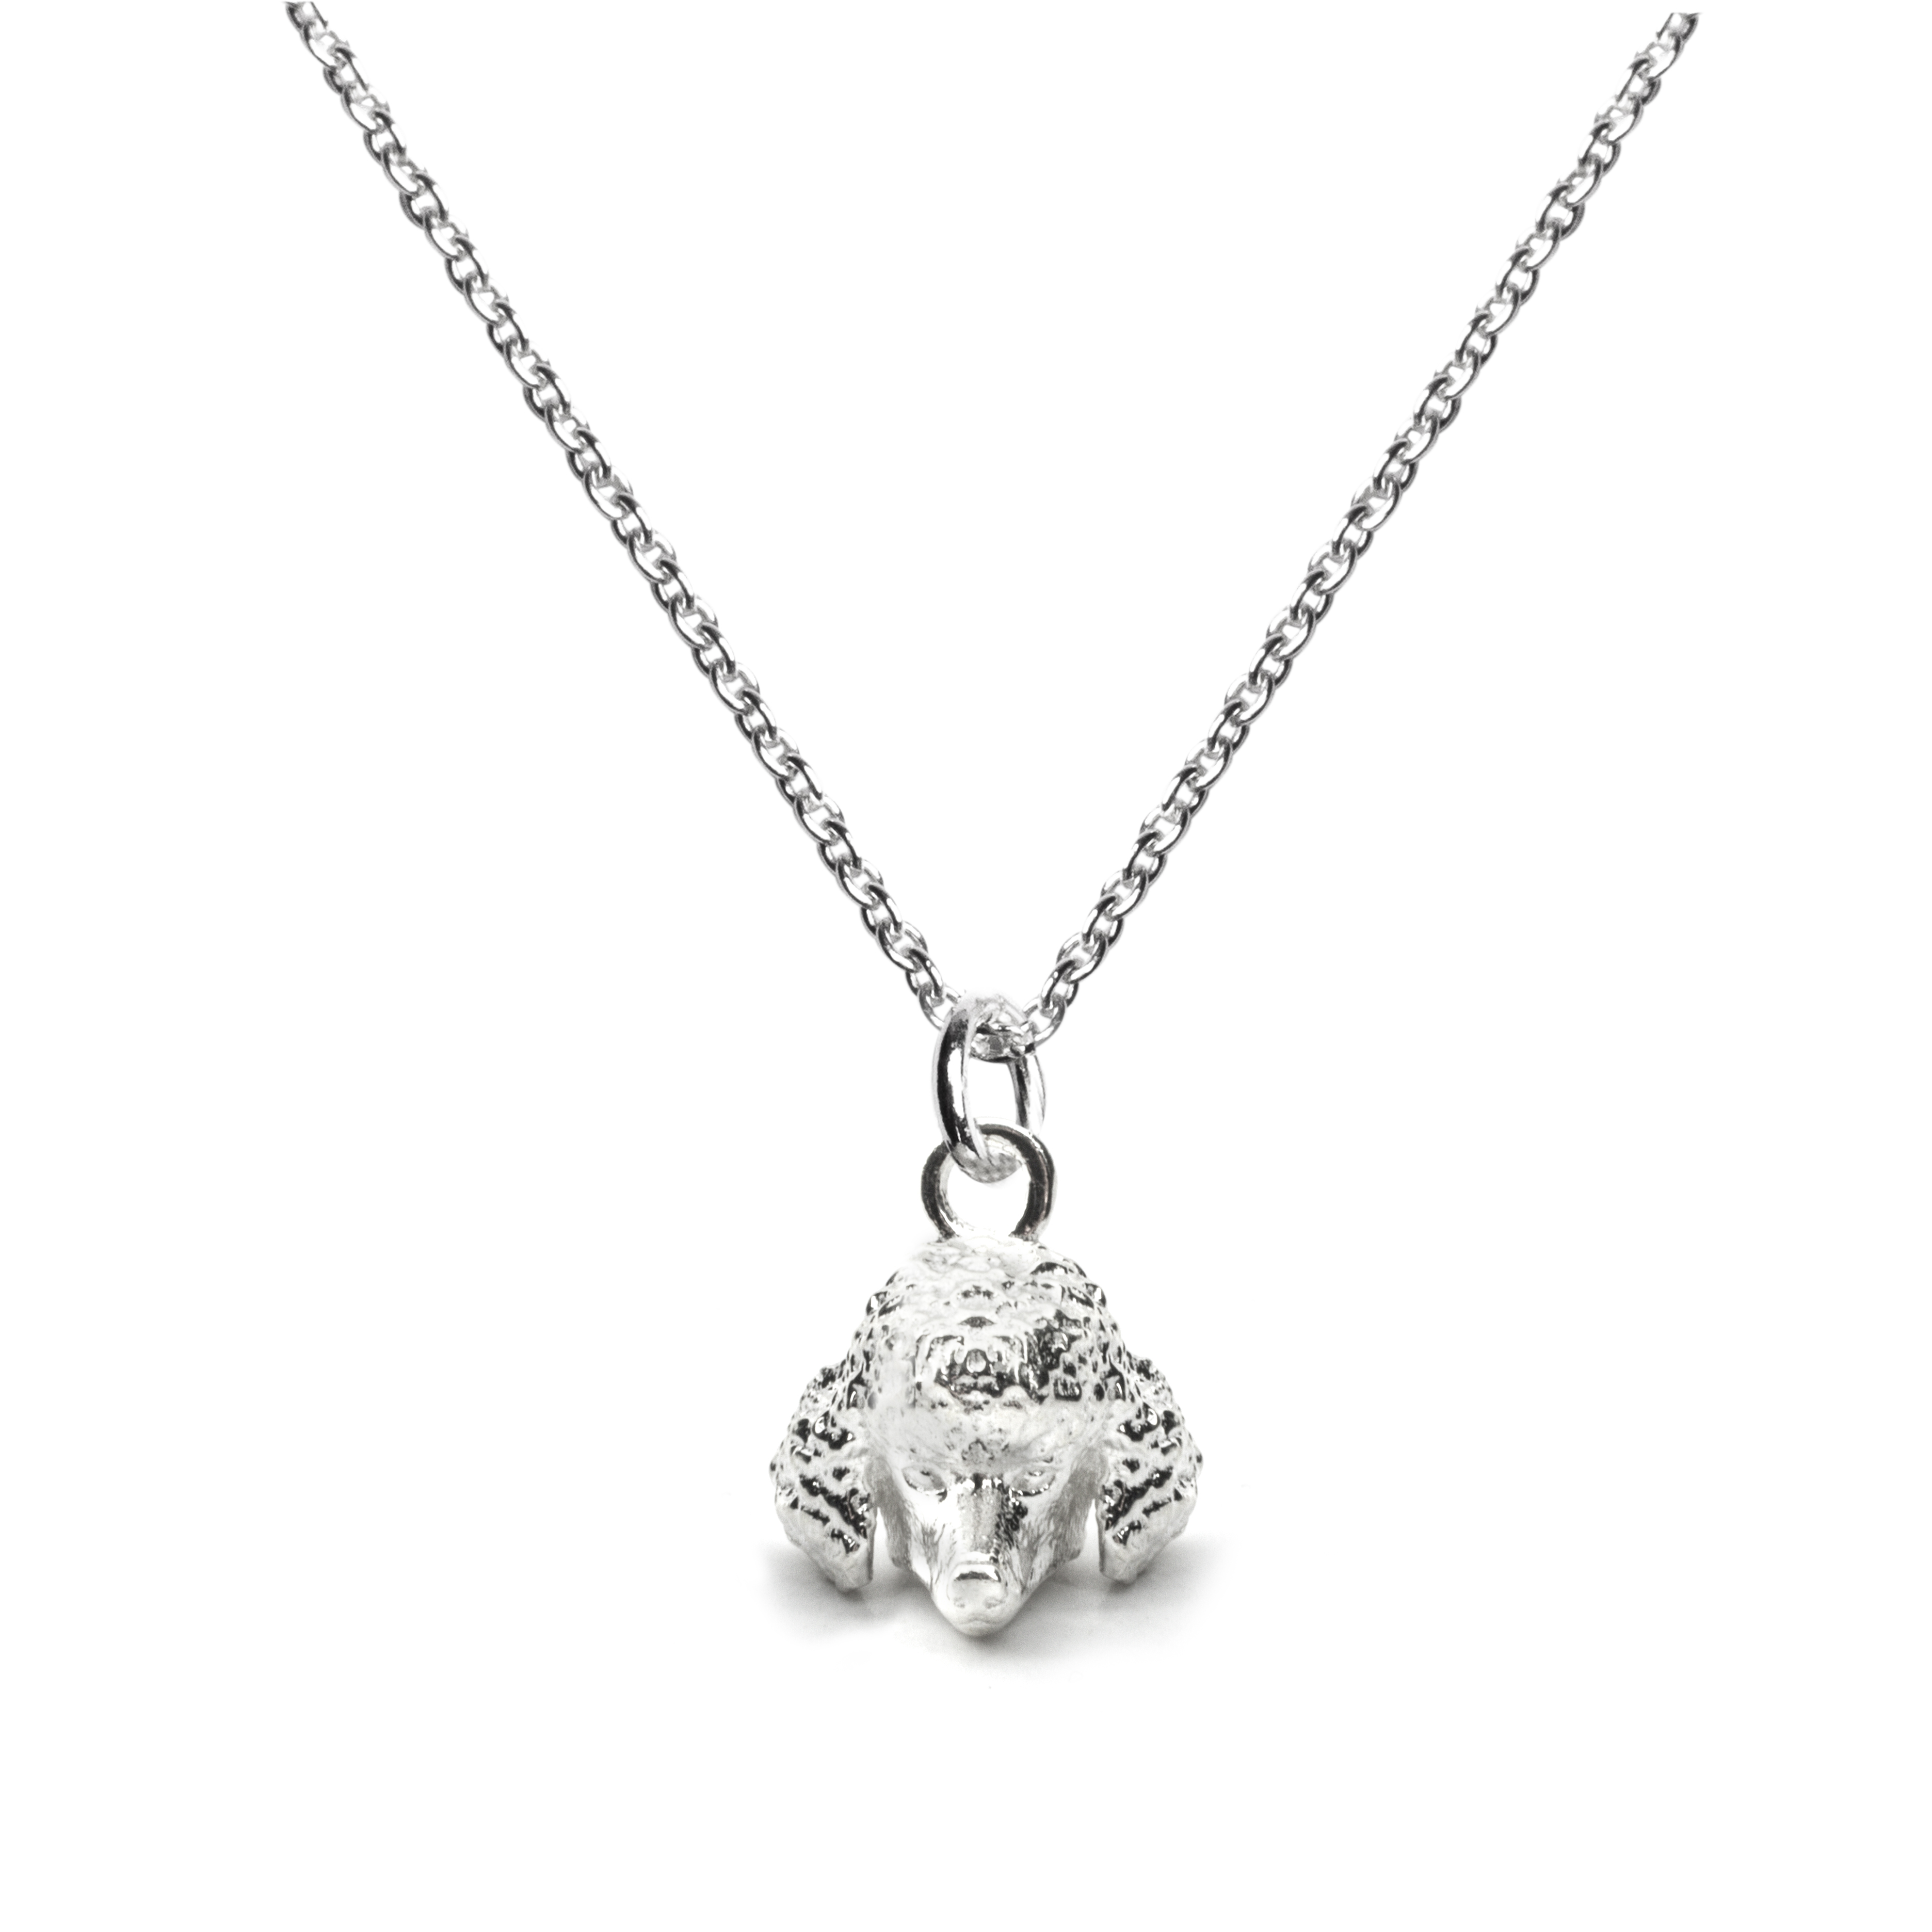 Poodle_Head Pendant_silver_HIGH